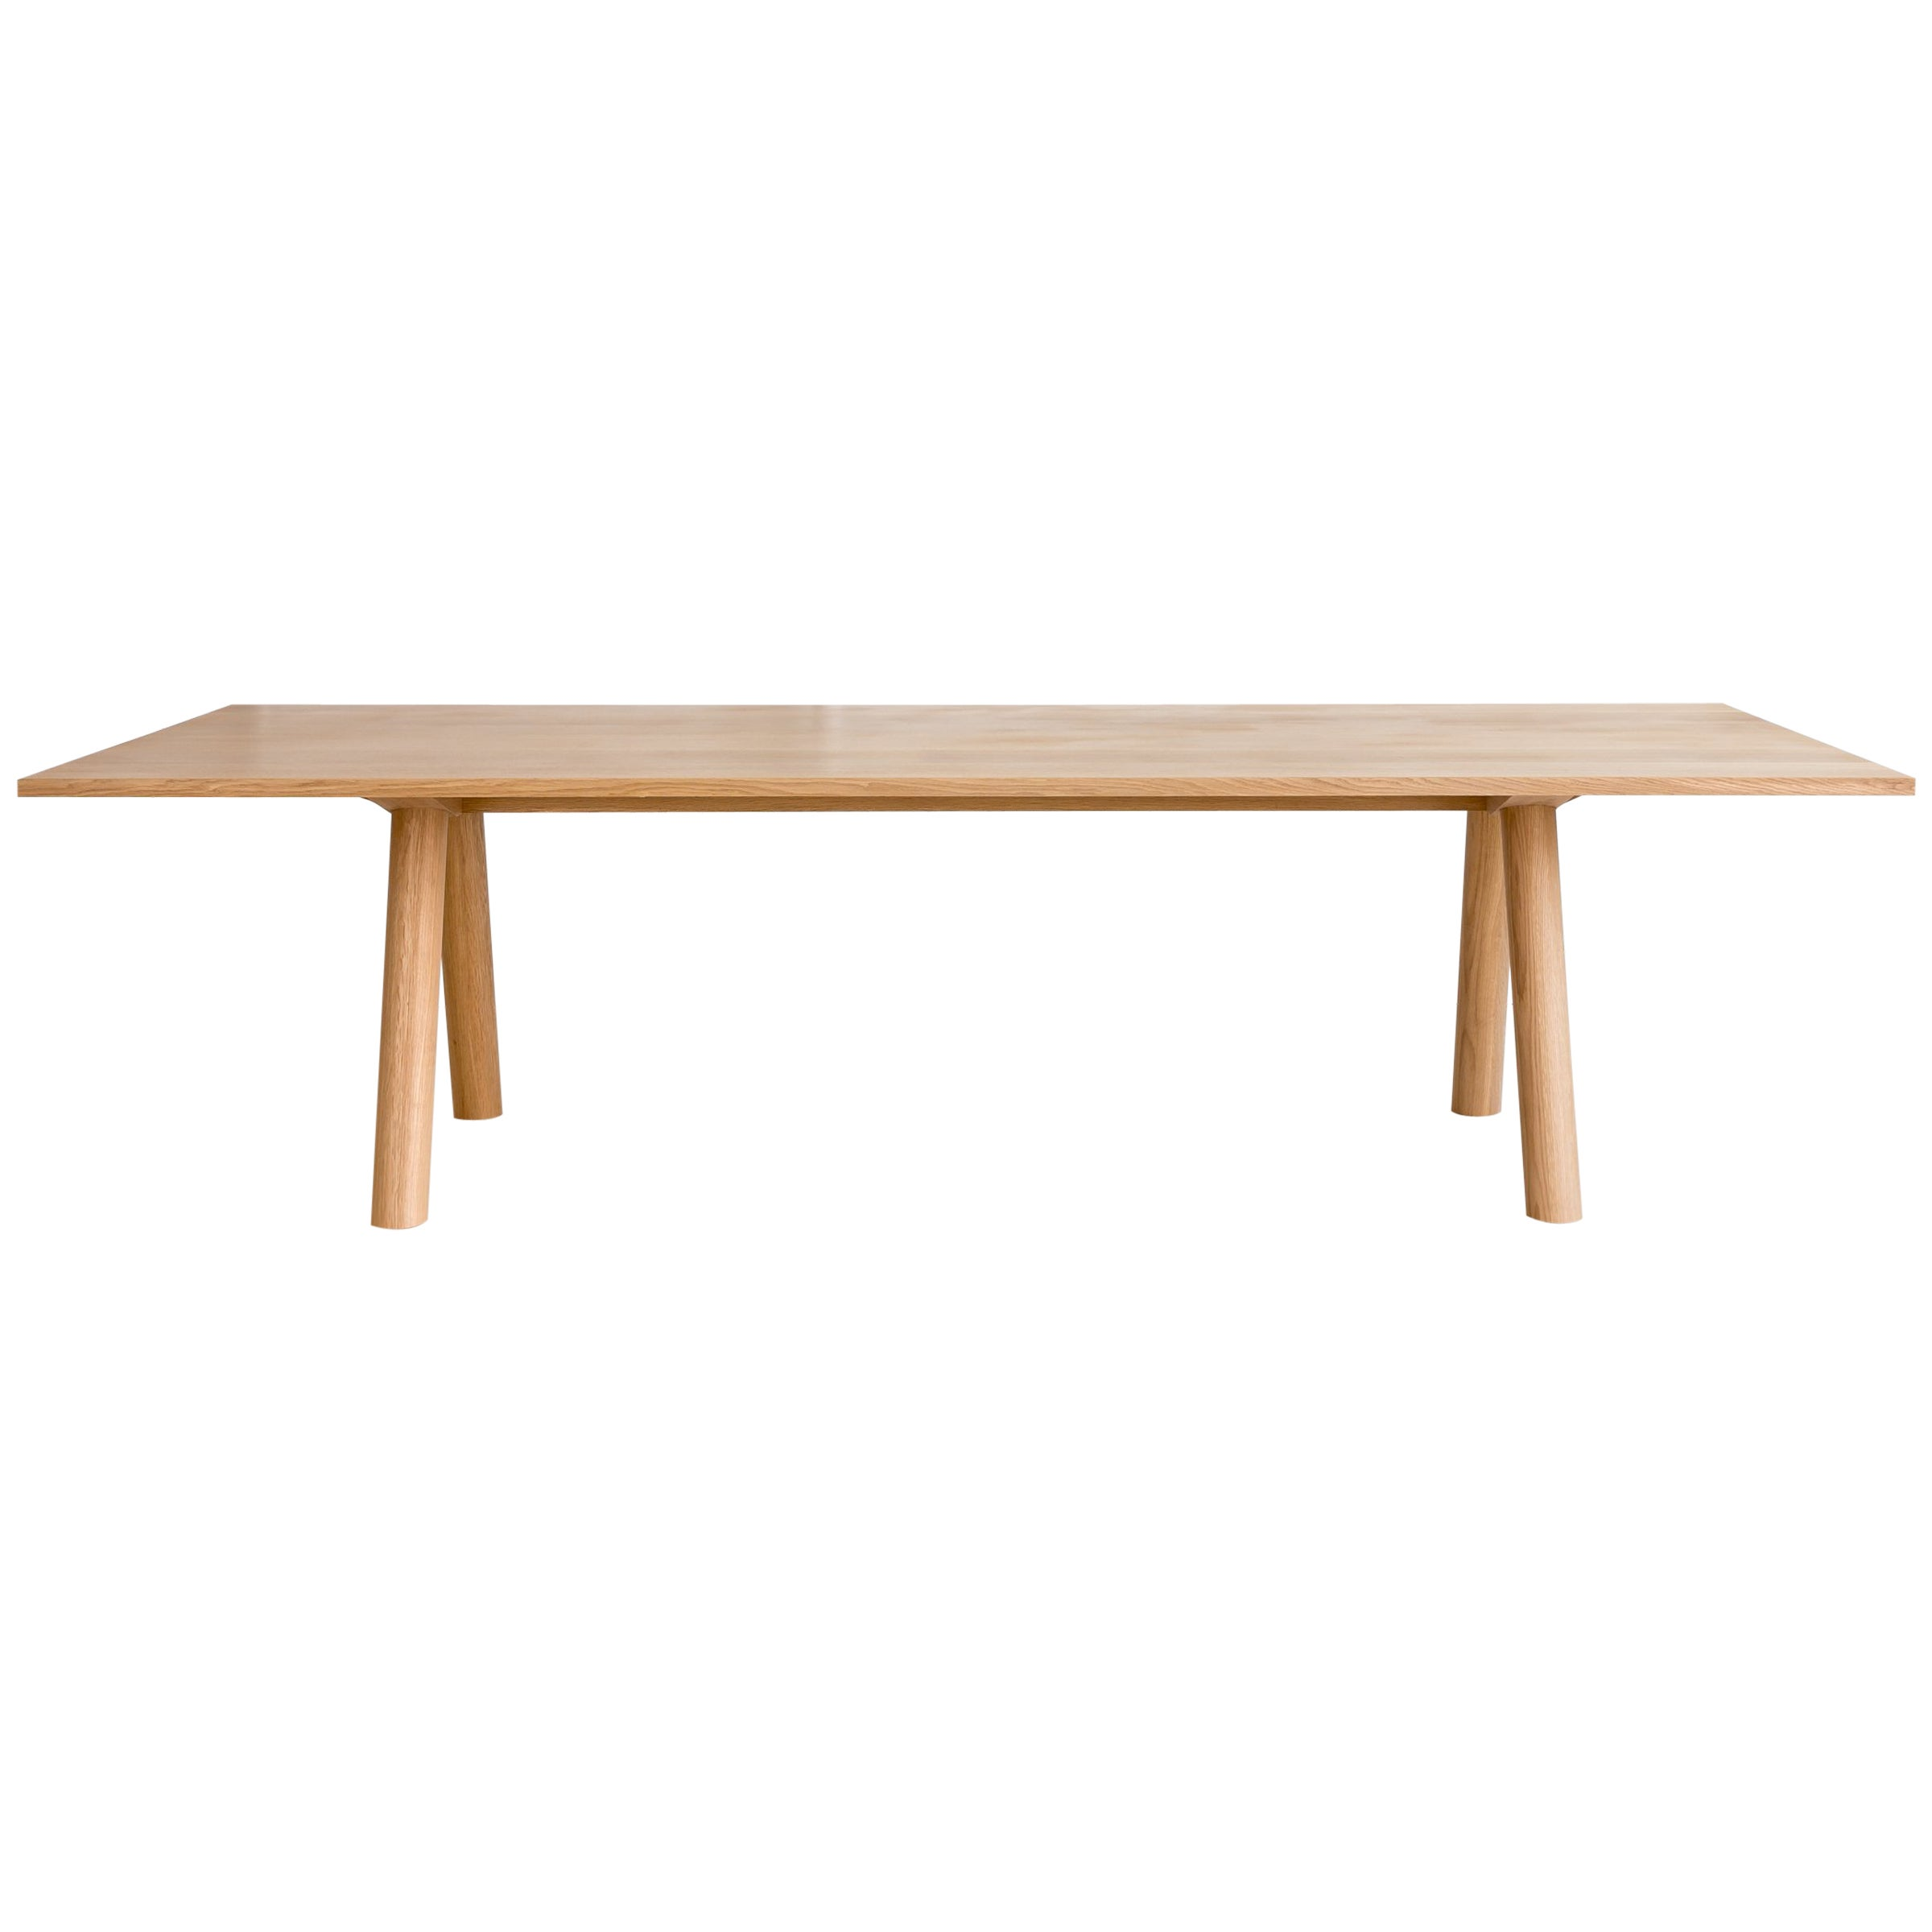 Contemporary Wood Angled Leg Column Dining Table in White Oak by Fort Standard